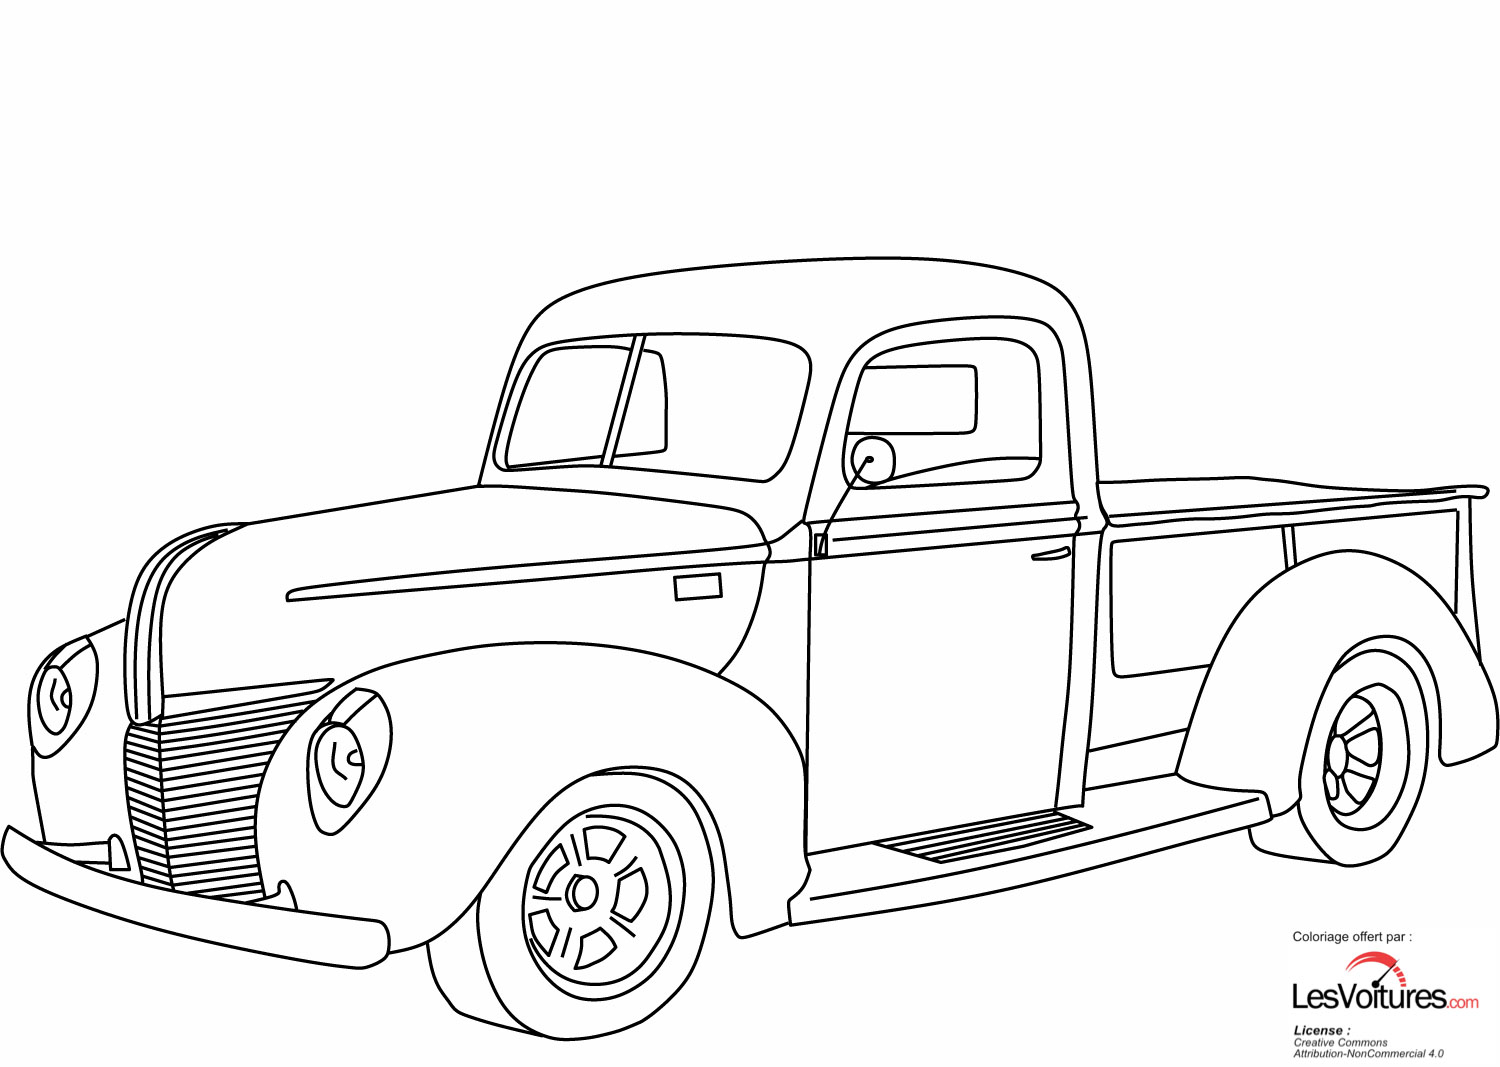 1940 Ford Pickup Coloriage Voiture Les Voitures